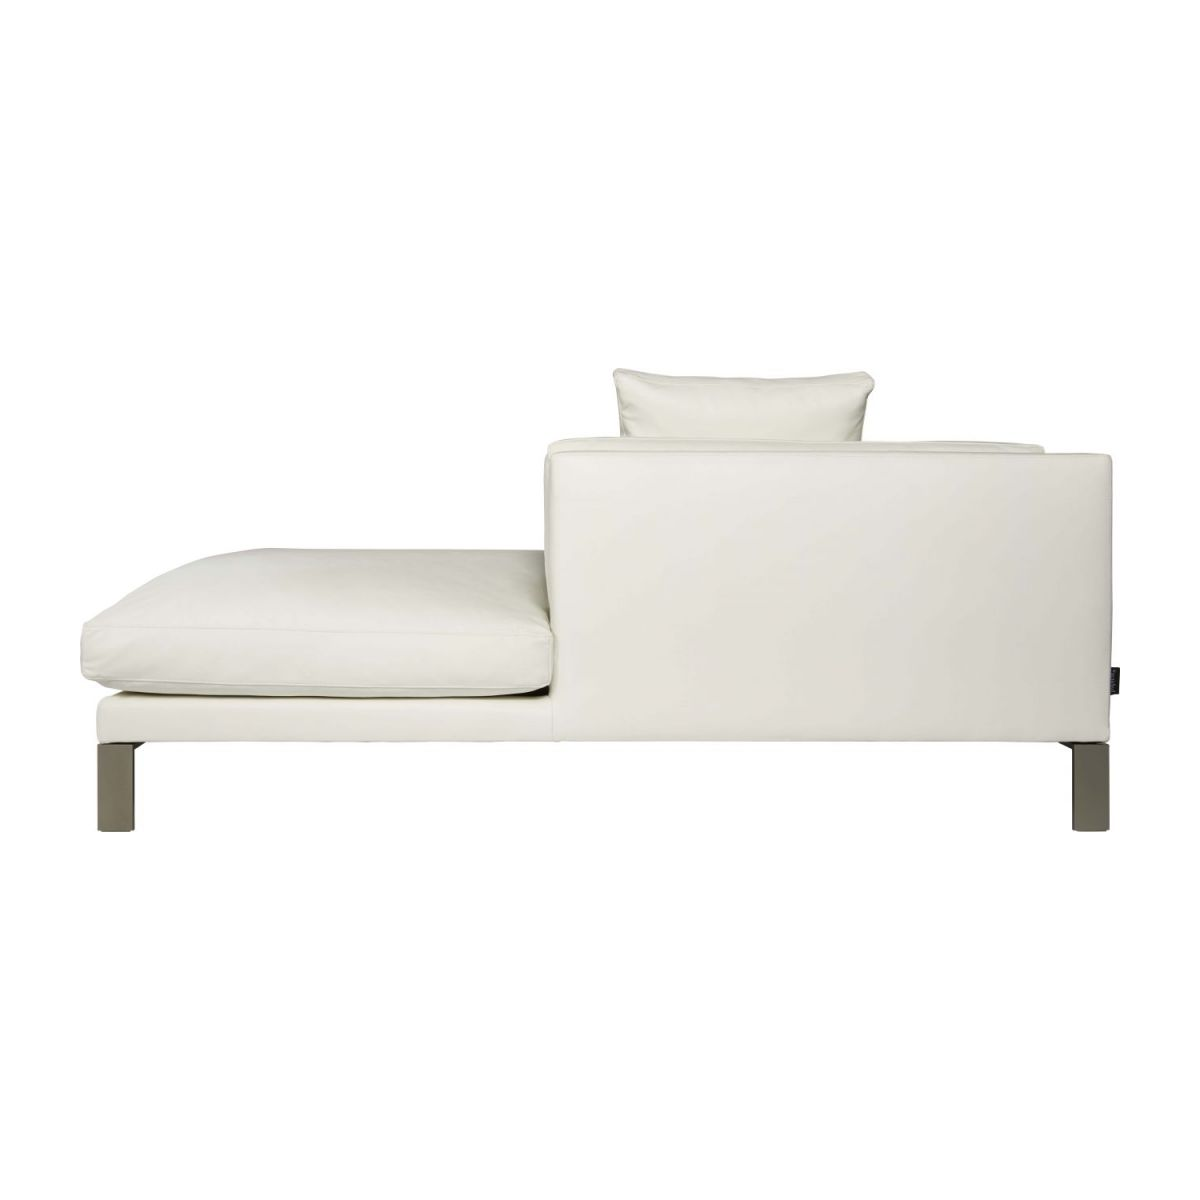 Leather right-arm chaise longue n°6